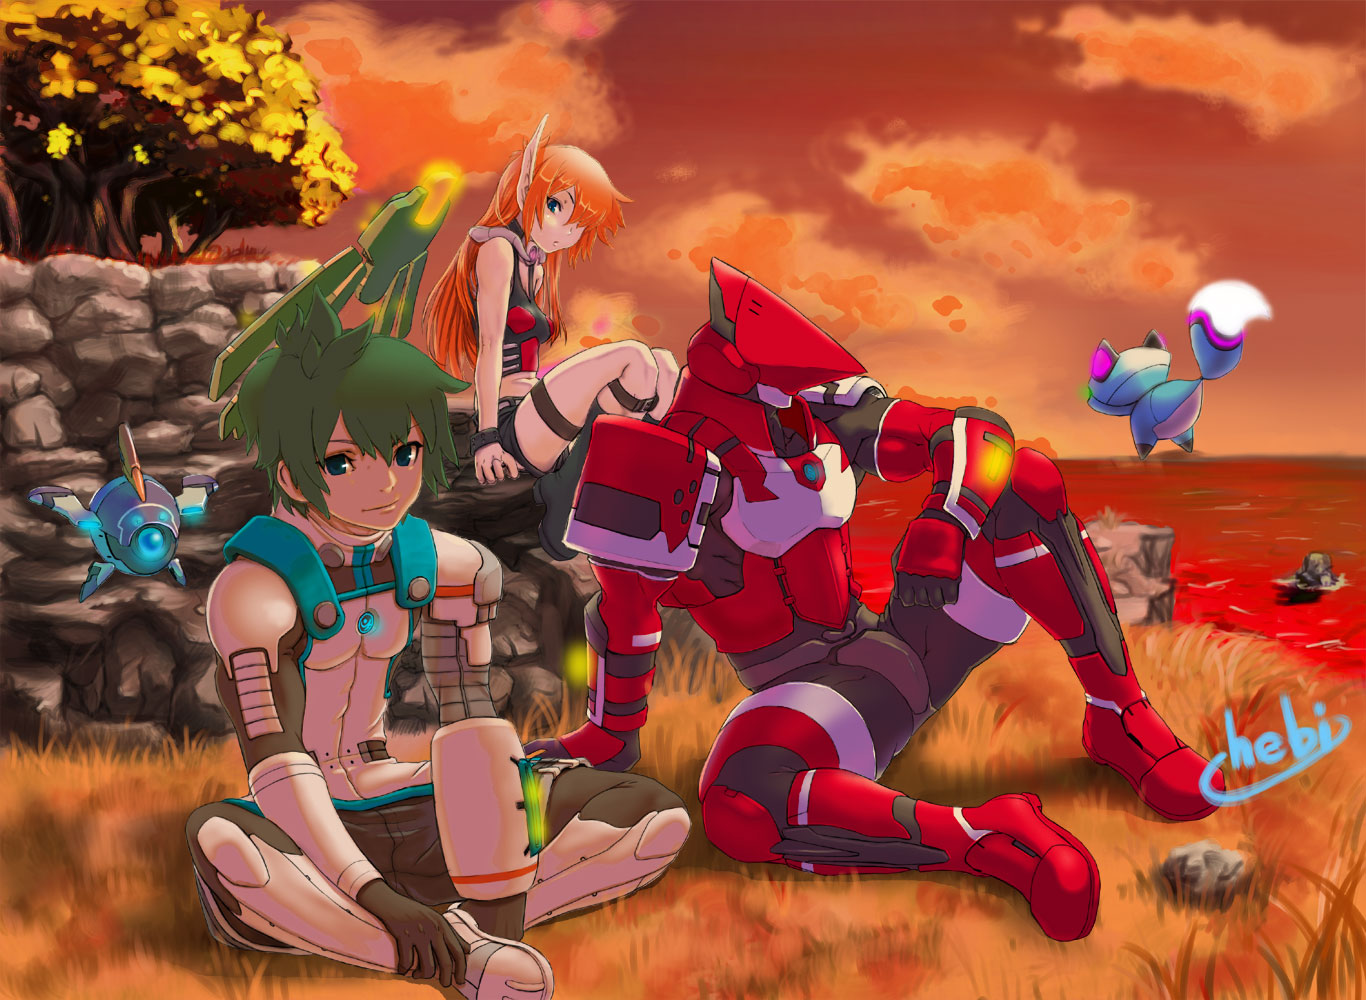 Nice Images Collection: Phantasy Star Desktop Wallpapers